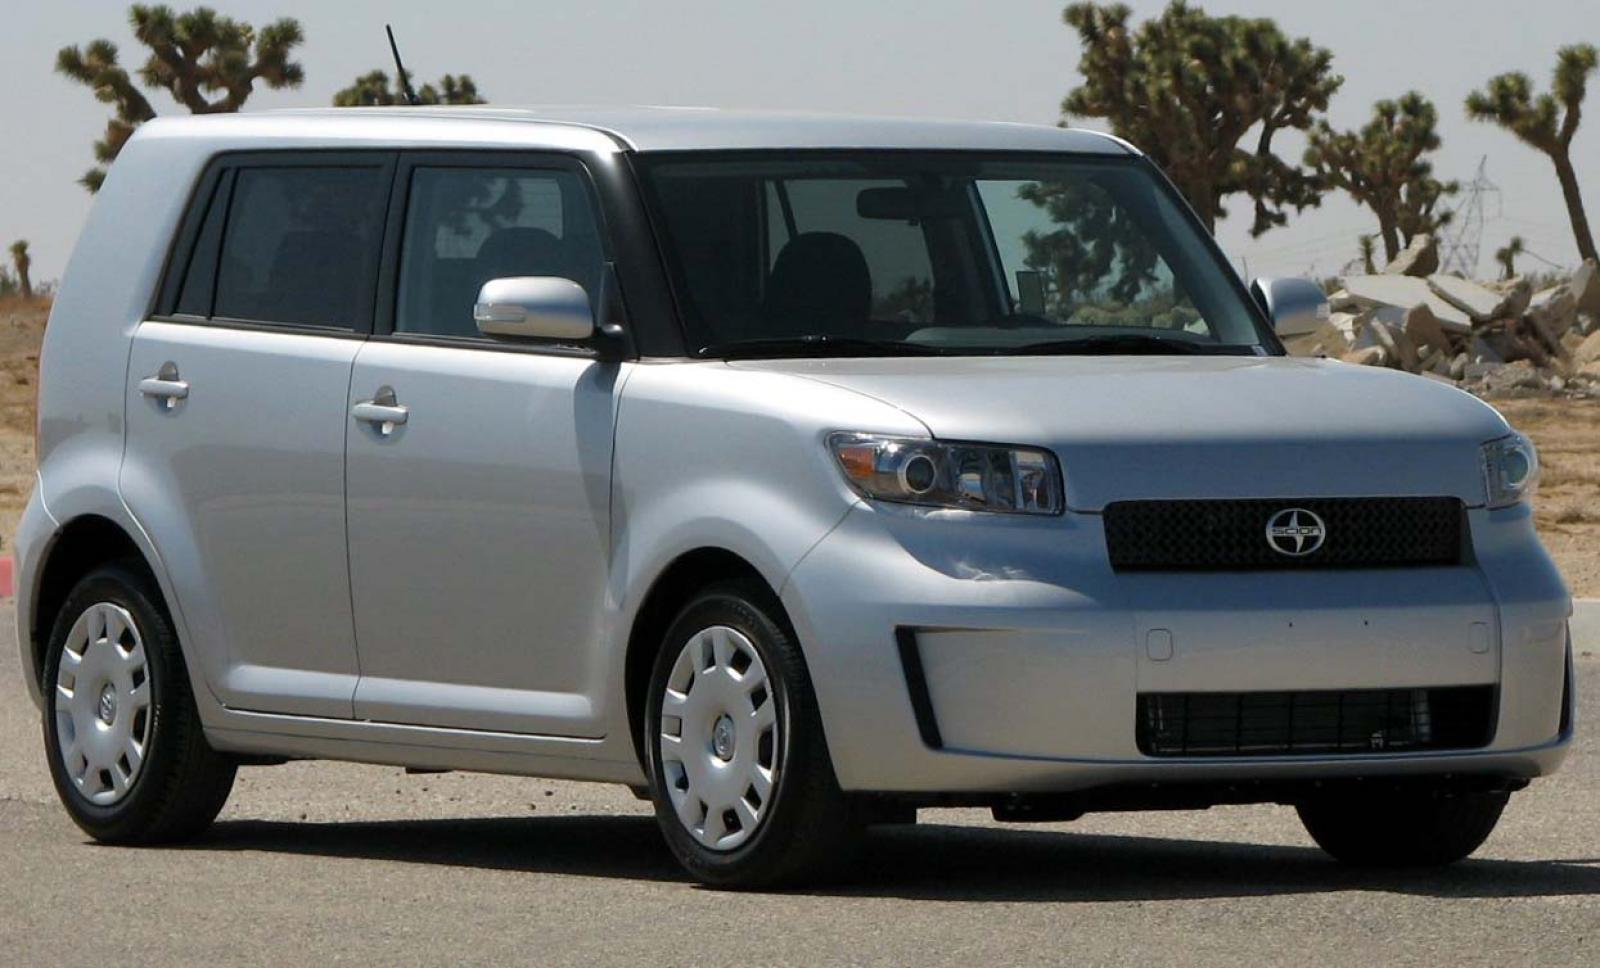 2008 Scion xB - Information and photos - Zomb Drive